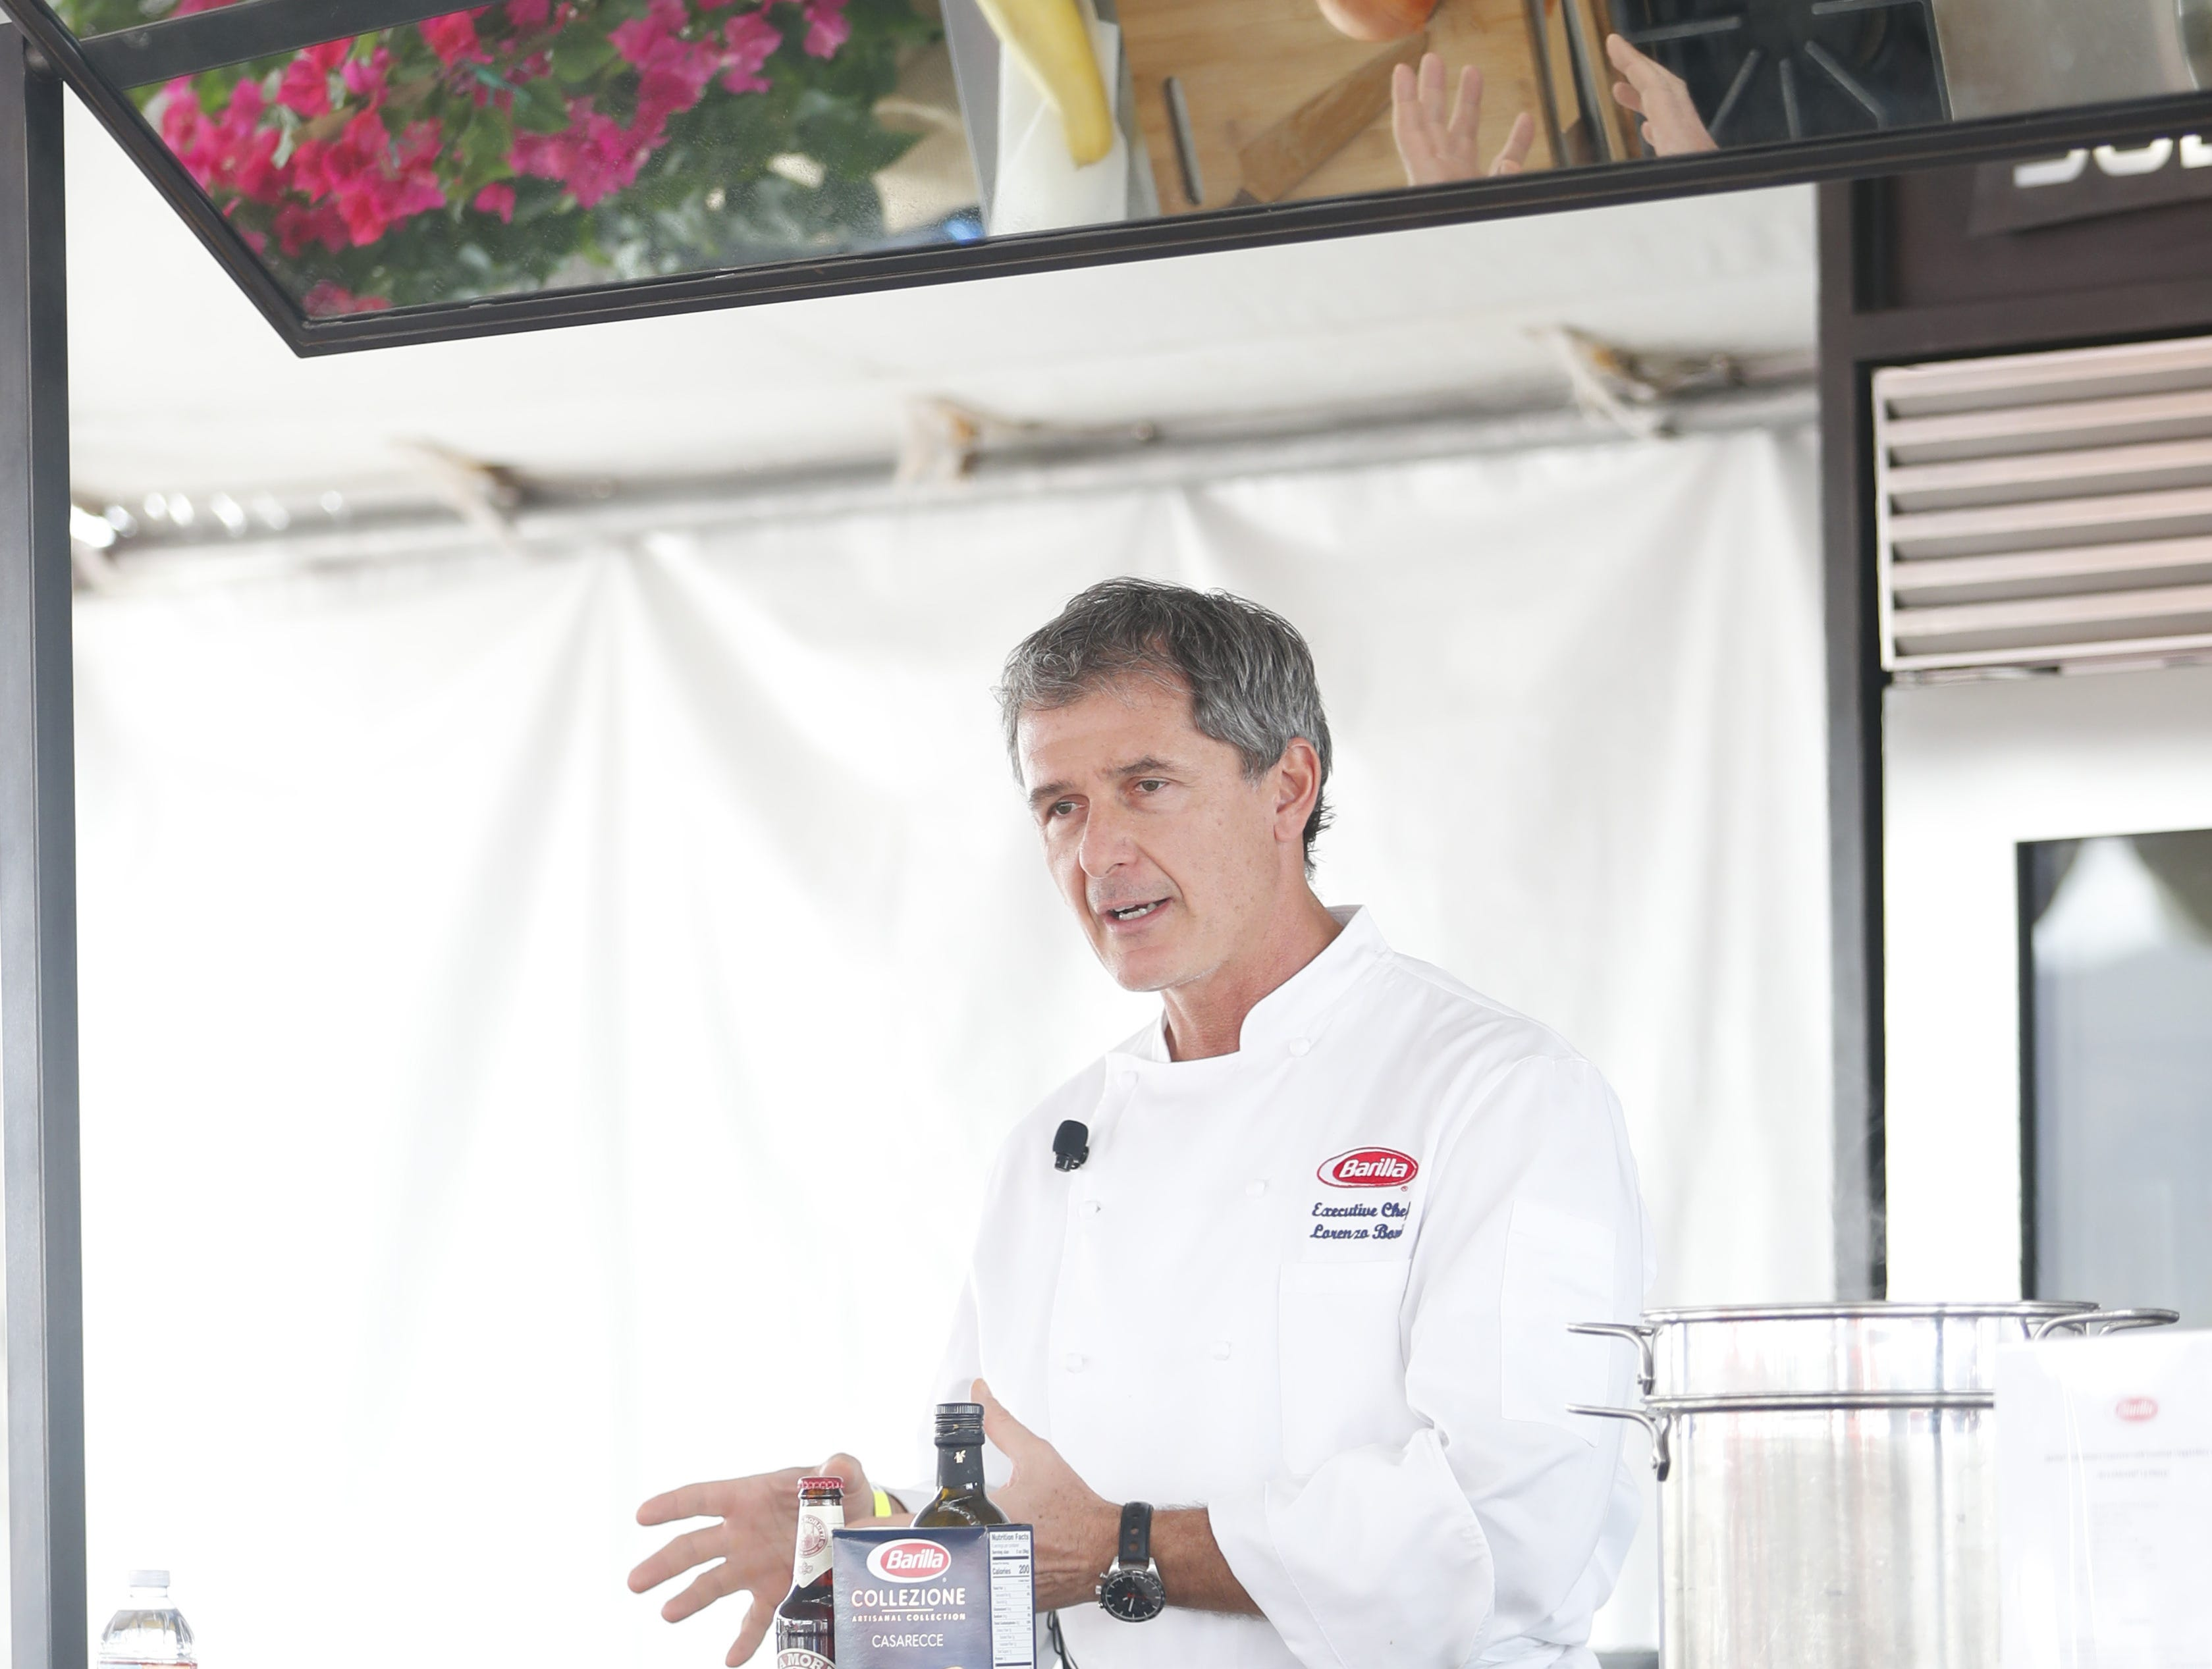 Chef Lorenzo Boni speaks while making a dish during a demonstration during the azcentral Wine & Food Experience at WestWorld of Scottsdale, Ariz. on November 4, 2018.